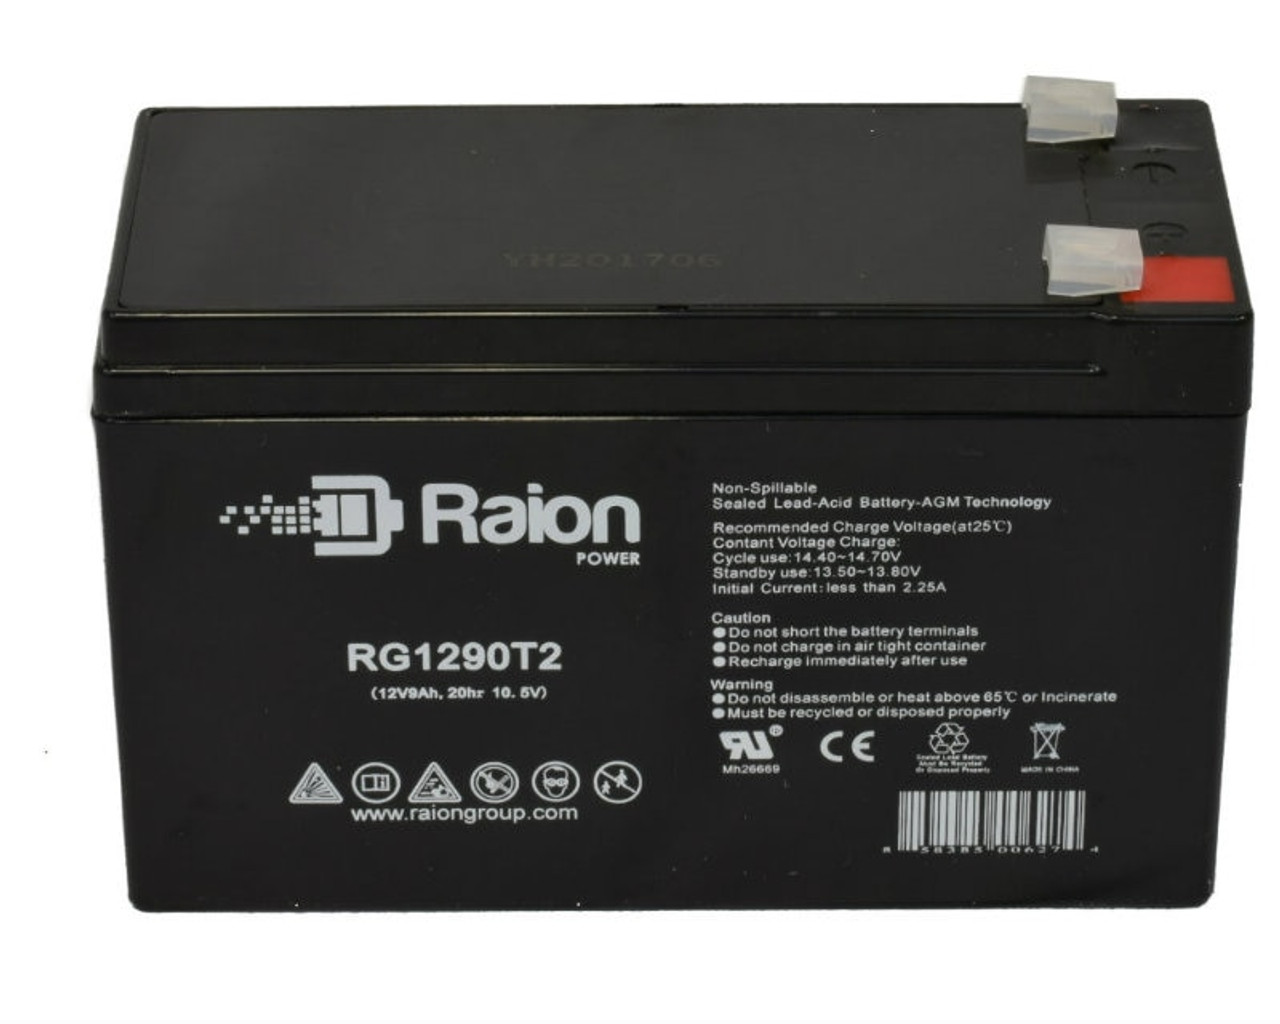 Raion Power 12V 9Ah SLA Battery With T2 Terminals For Potter Electric PFC-5004RG1290T2 Fire Alarm Control Panel